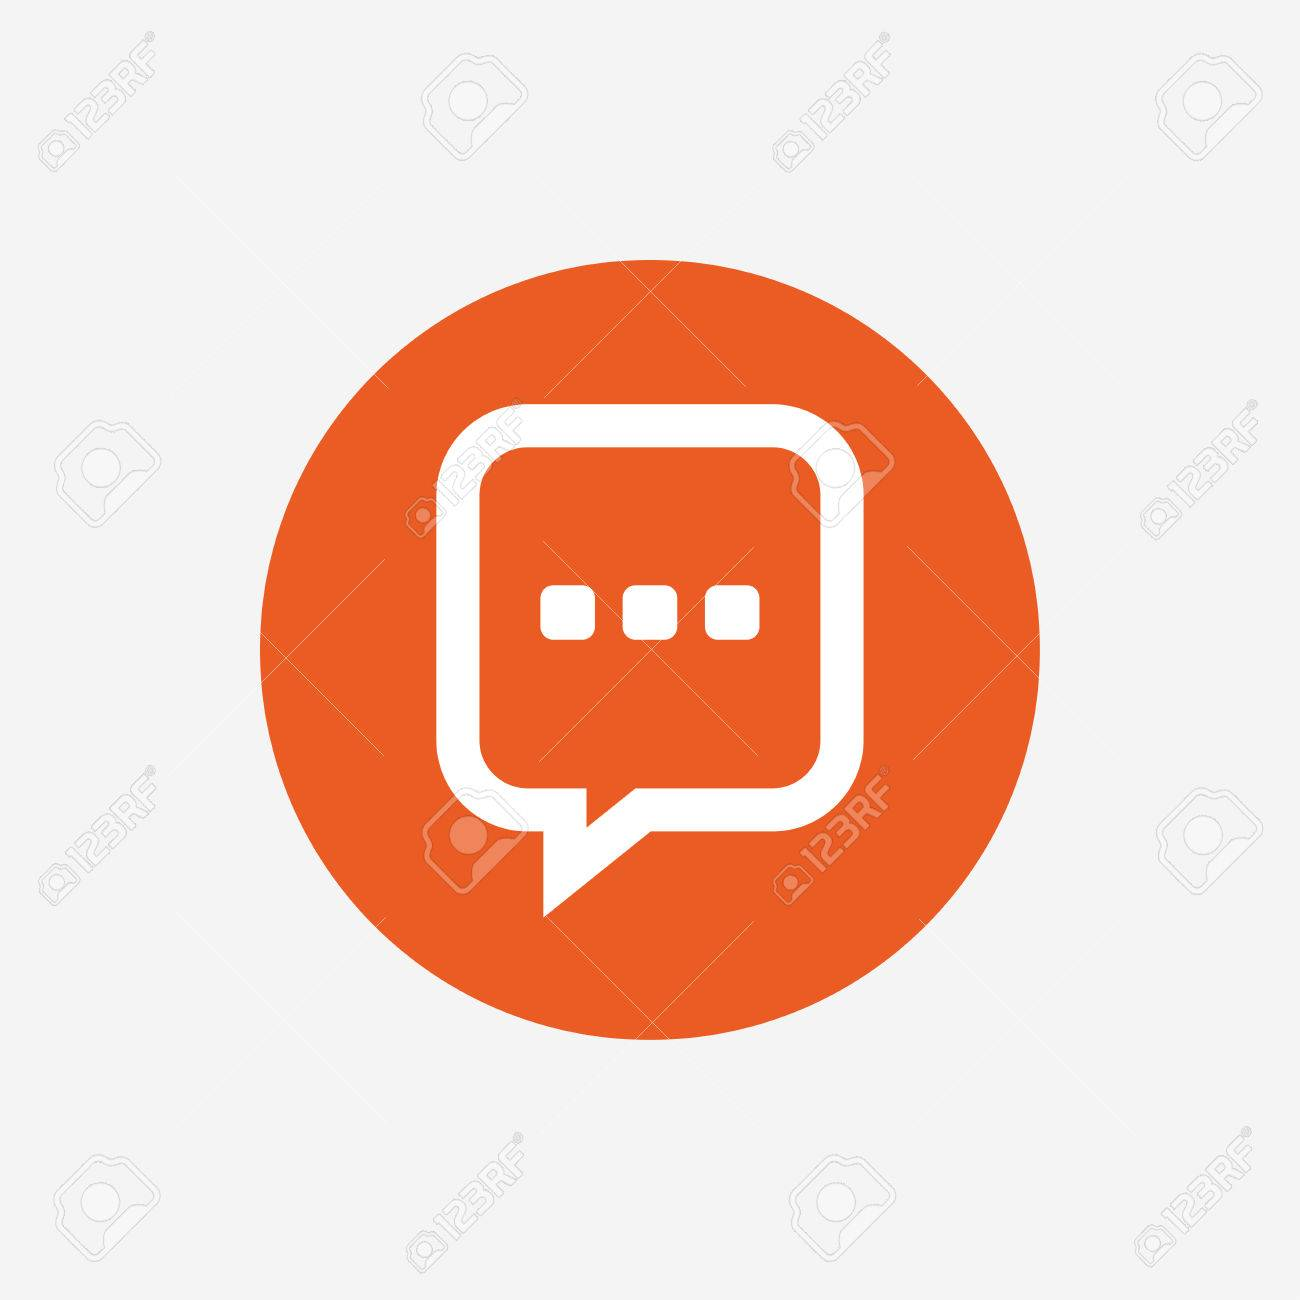 Chat sign icon speech bubble with three dots symbol speech bubble with three dots symbol communication chat bubble orange biocorpaavc